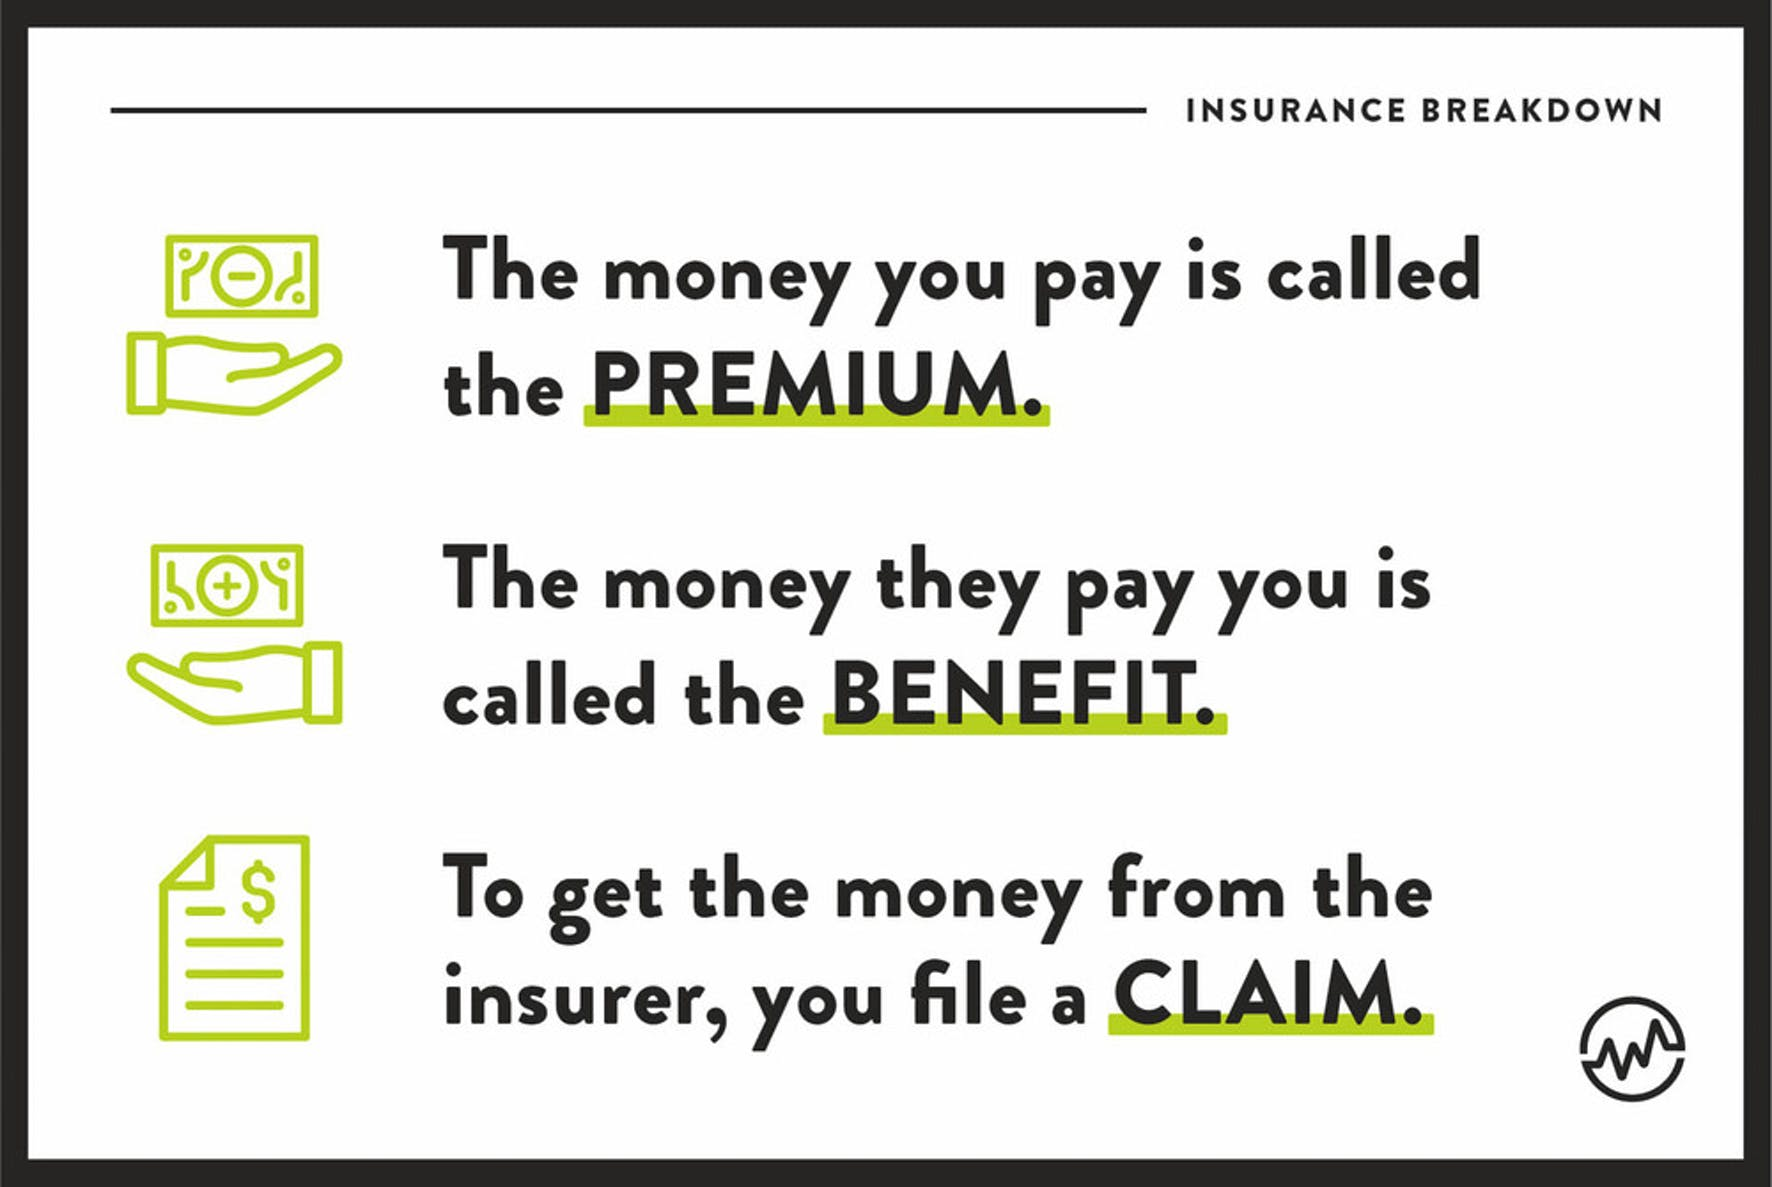 Insurance breakdown: premium, benefit, claim